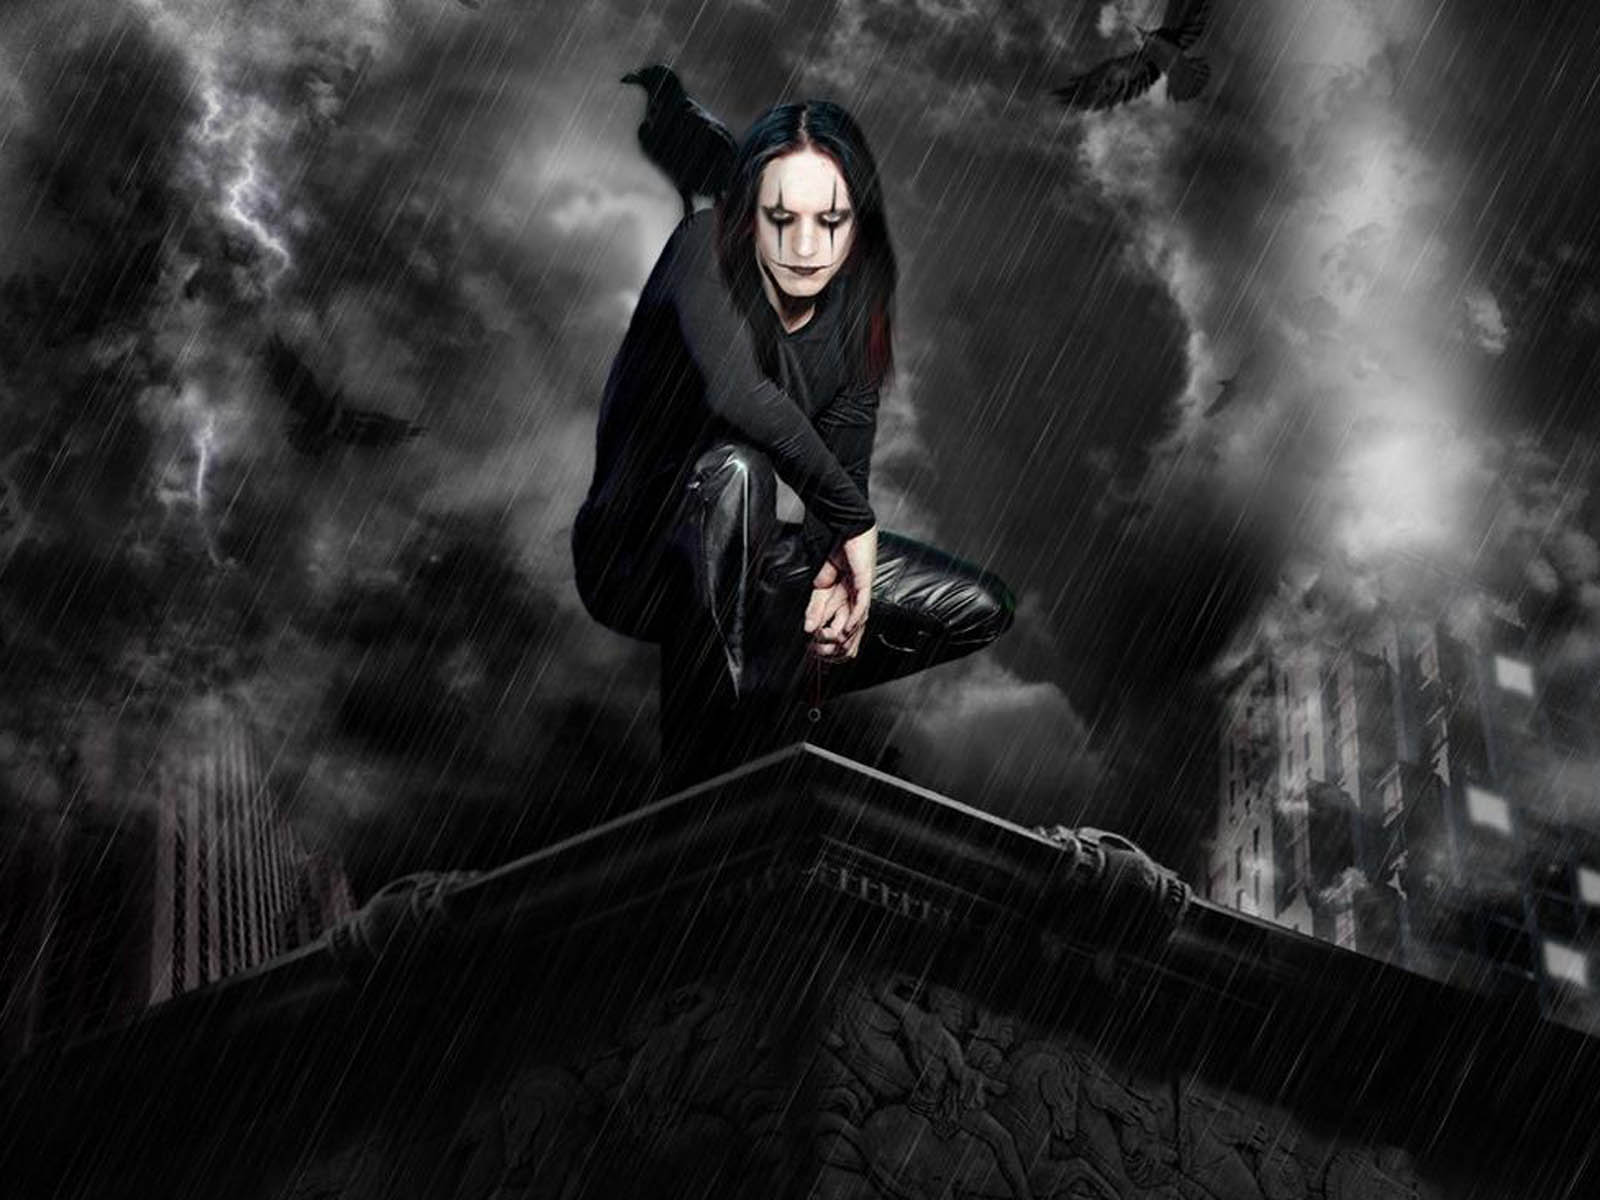 Gothic Wallpapers  Android Apps on Google Play 1600x1200